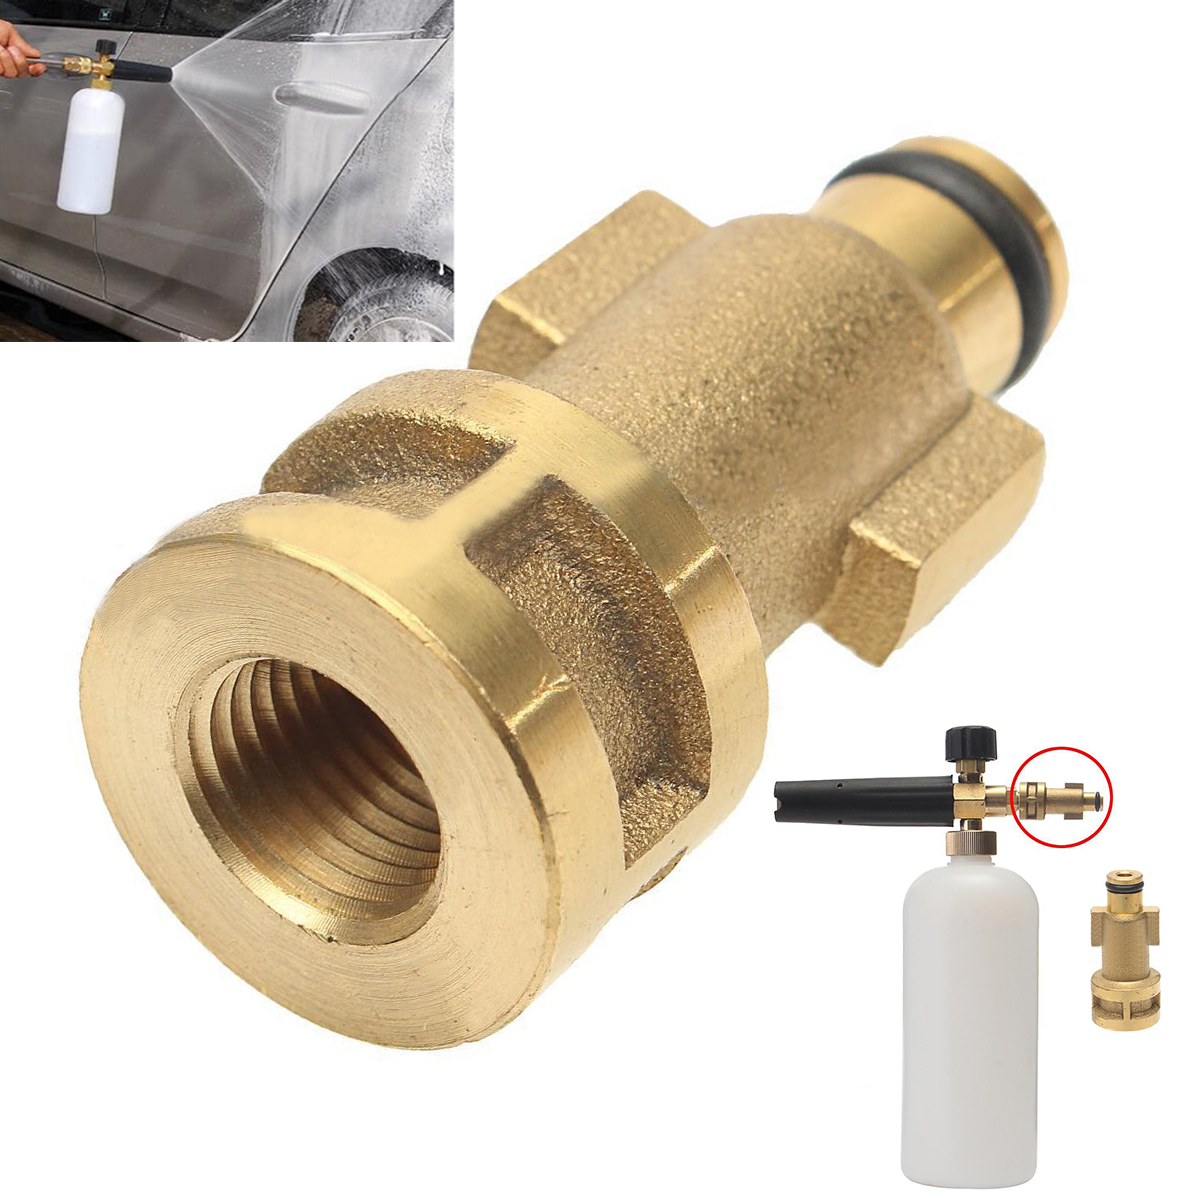 1pc Brass Snow Foam Lance Adapter Quick Connector Mayitr 1/4 Female Washer Adaptor For Pressure Water Pot Car Washing Tools proxi rfid card reader without keypad wg26 access control rfid reader rf em door access card reader